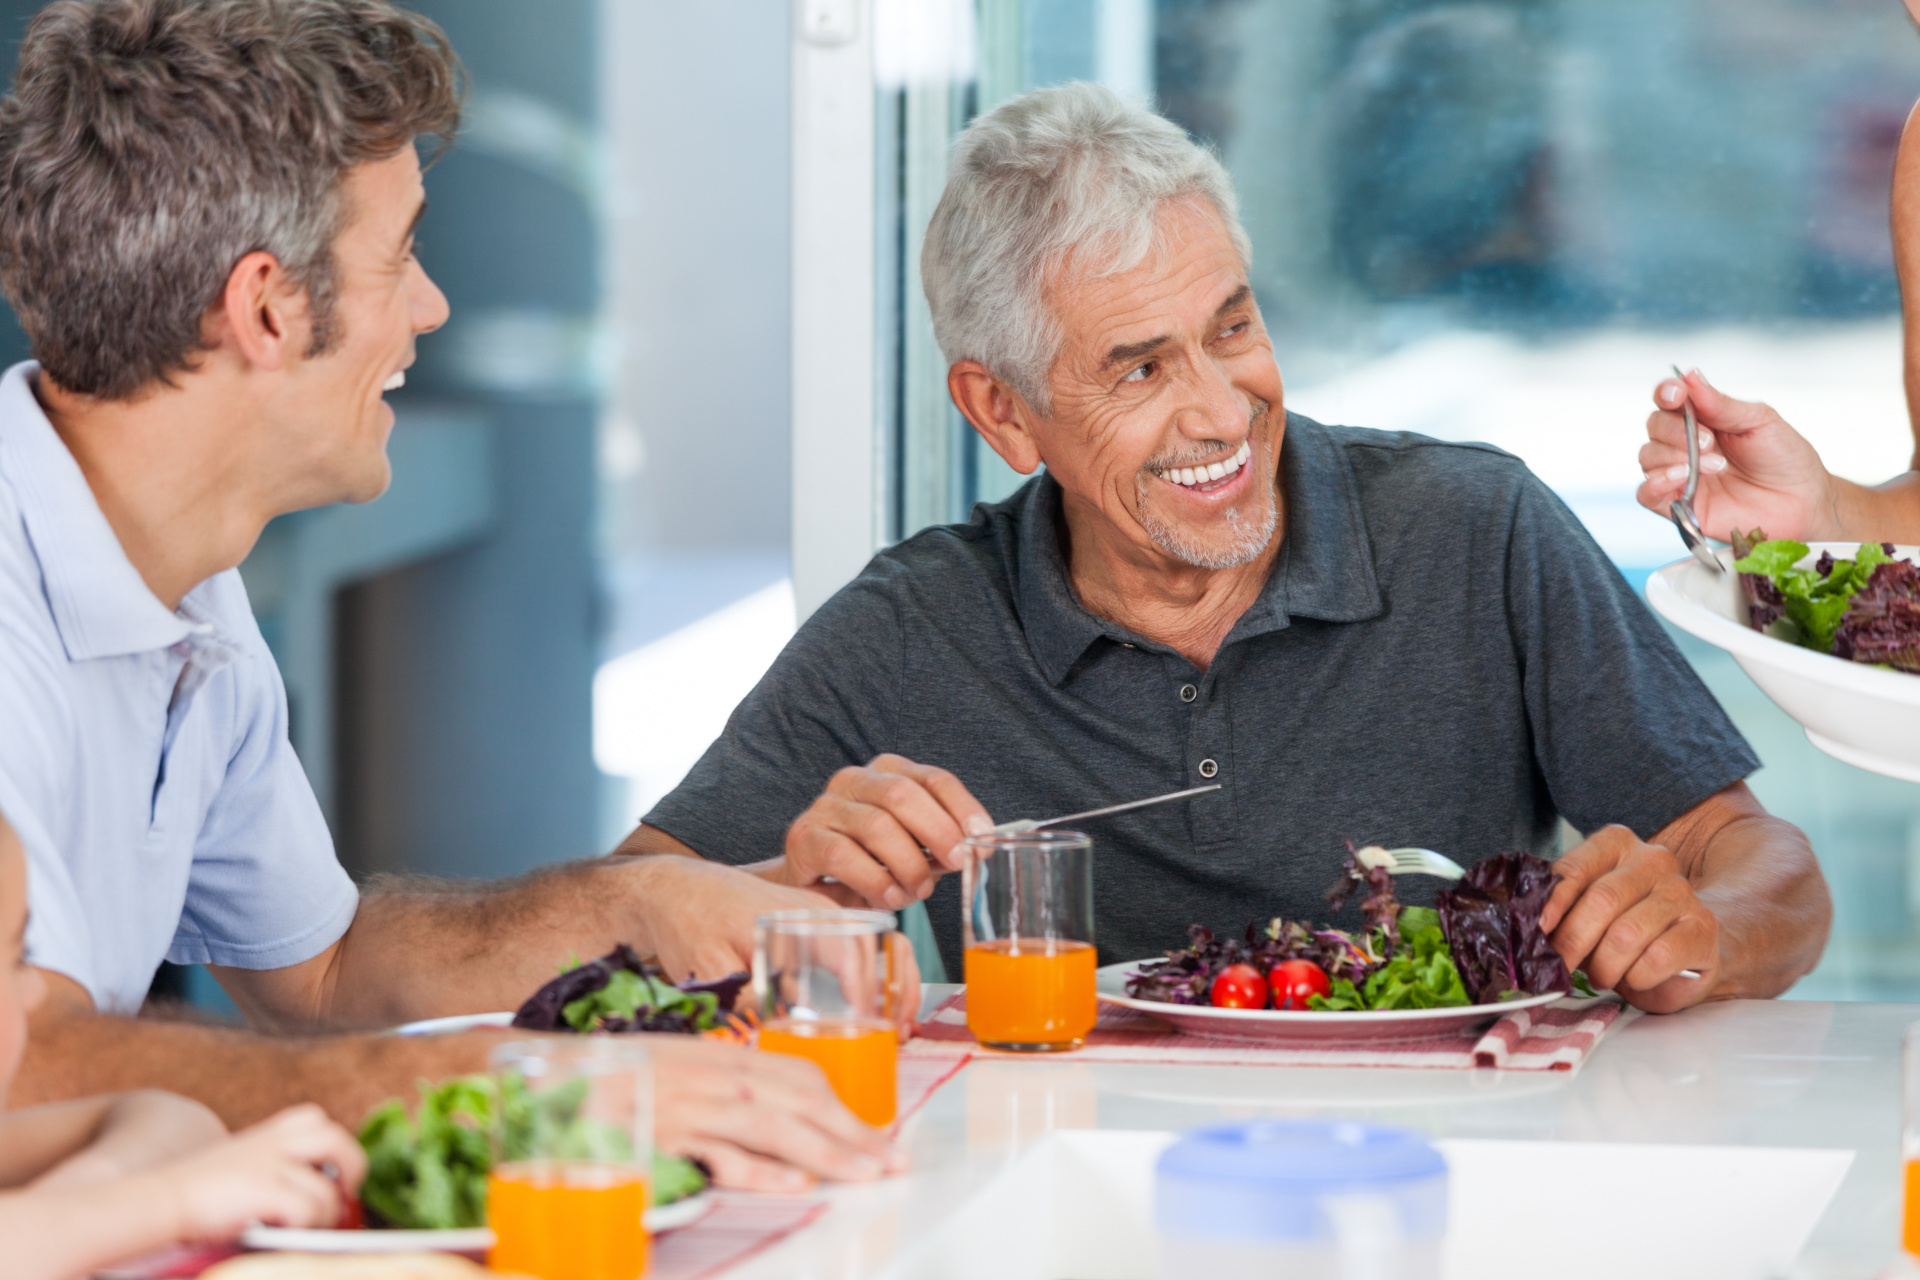 Aging Patients: Say What You Want